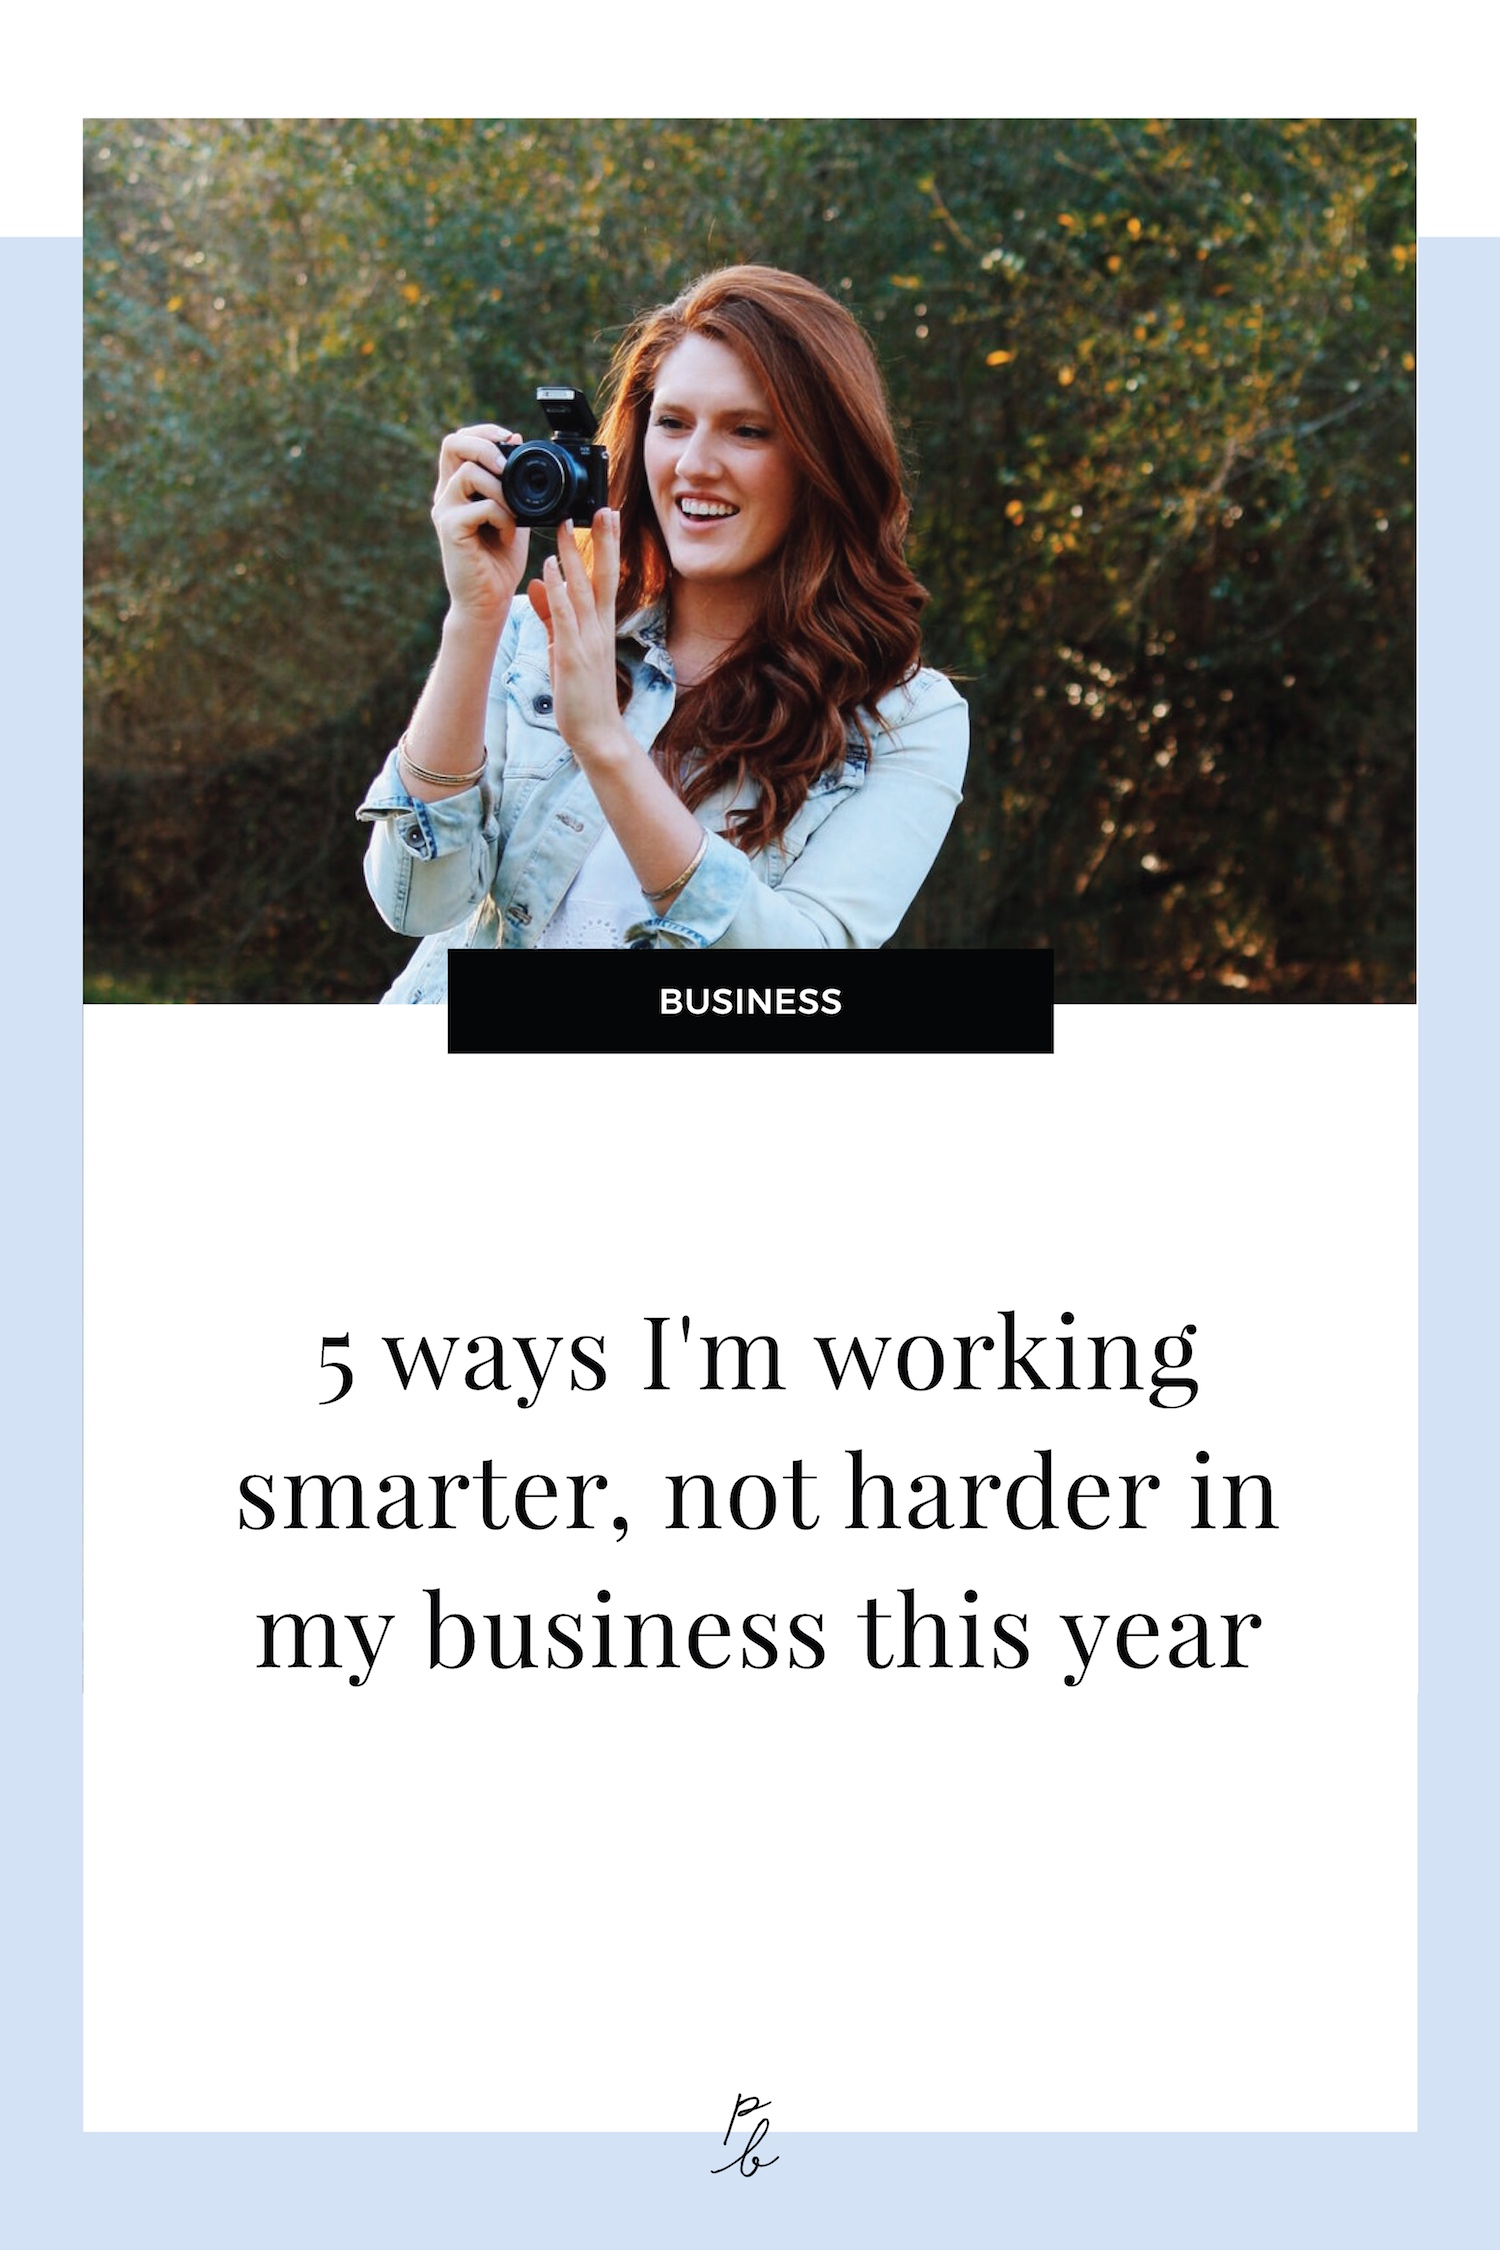 5 ways I'm working smarter, not harder in my business this year.jpg